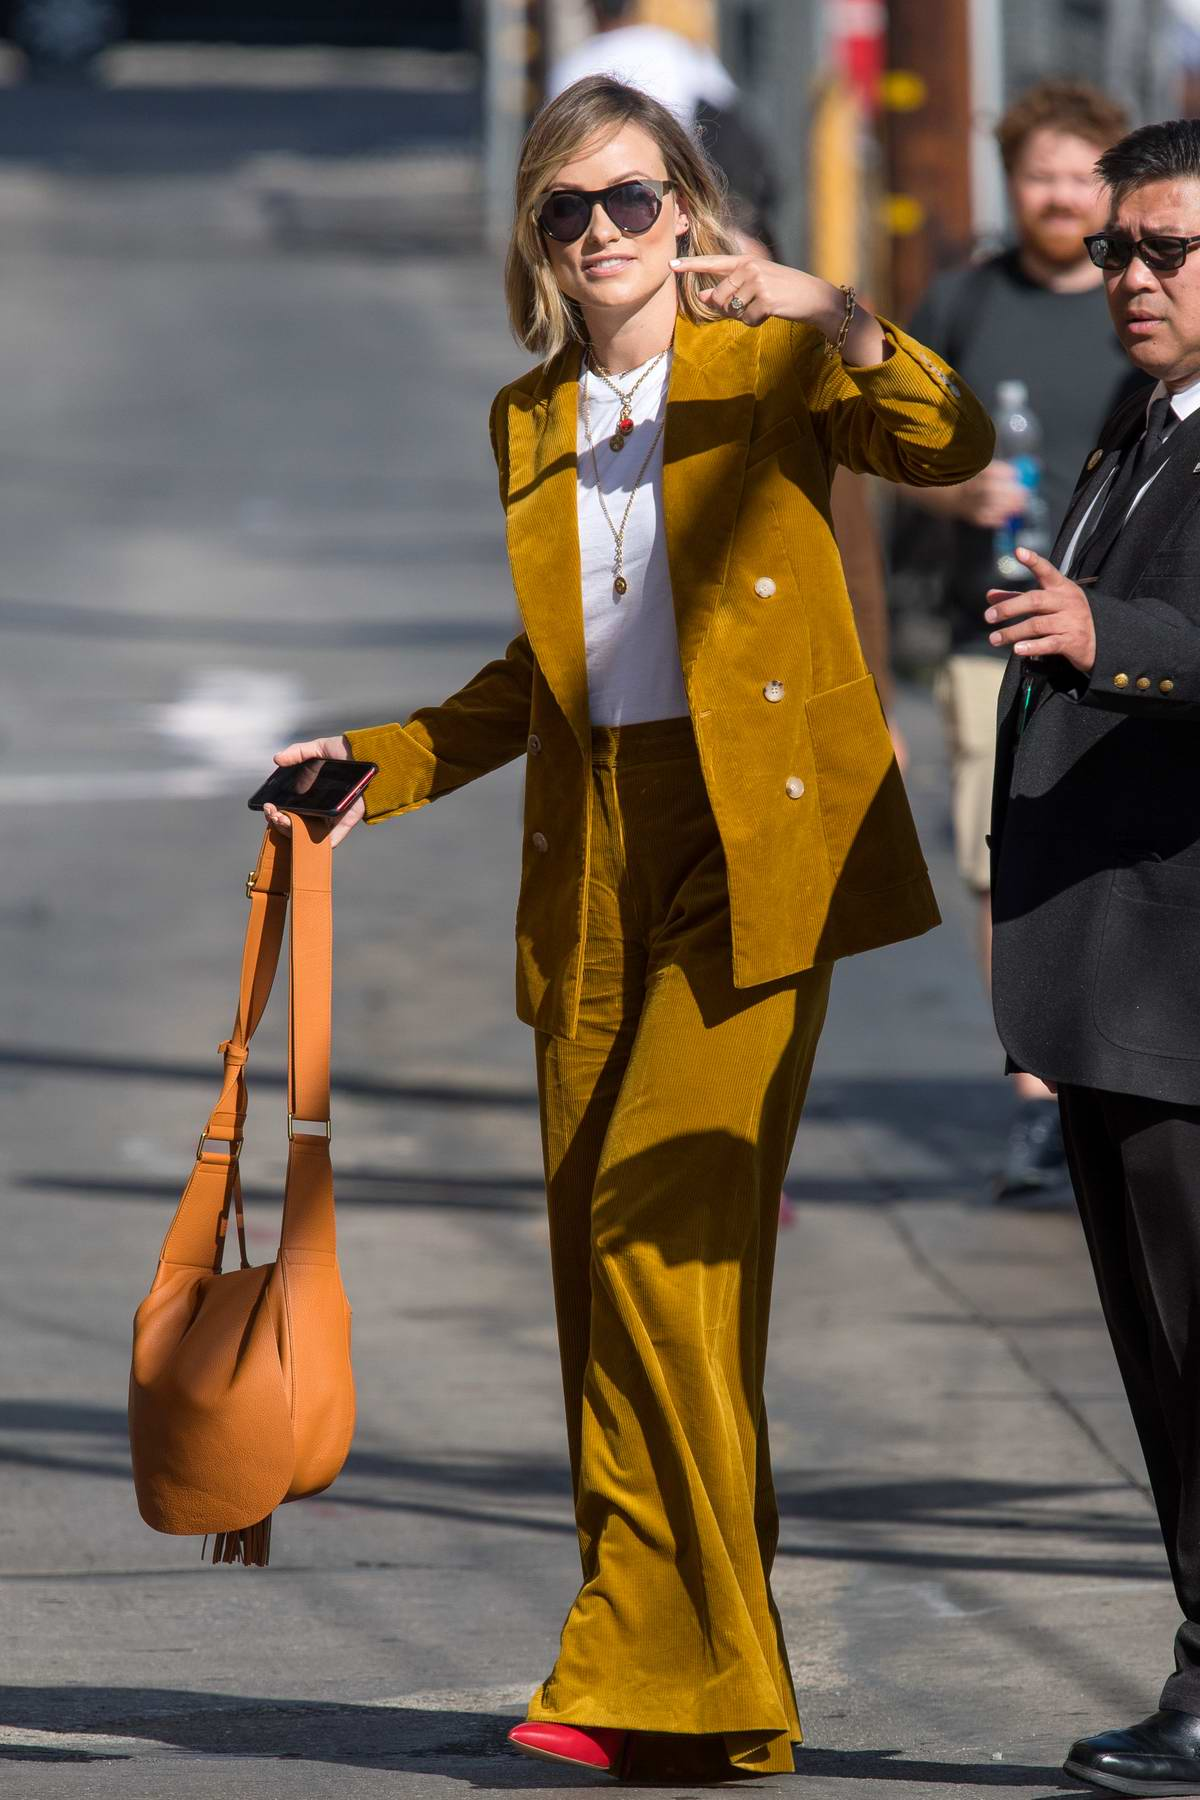 Olivia Wilde wears a mustard yellow corduroy suit as she arrives at 'Jimmy Kimmel Live' in Los Angeles